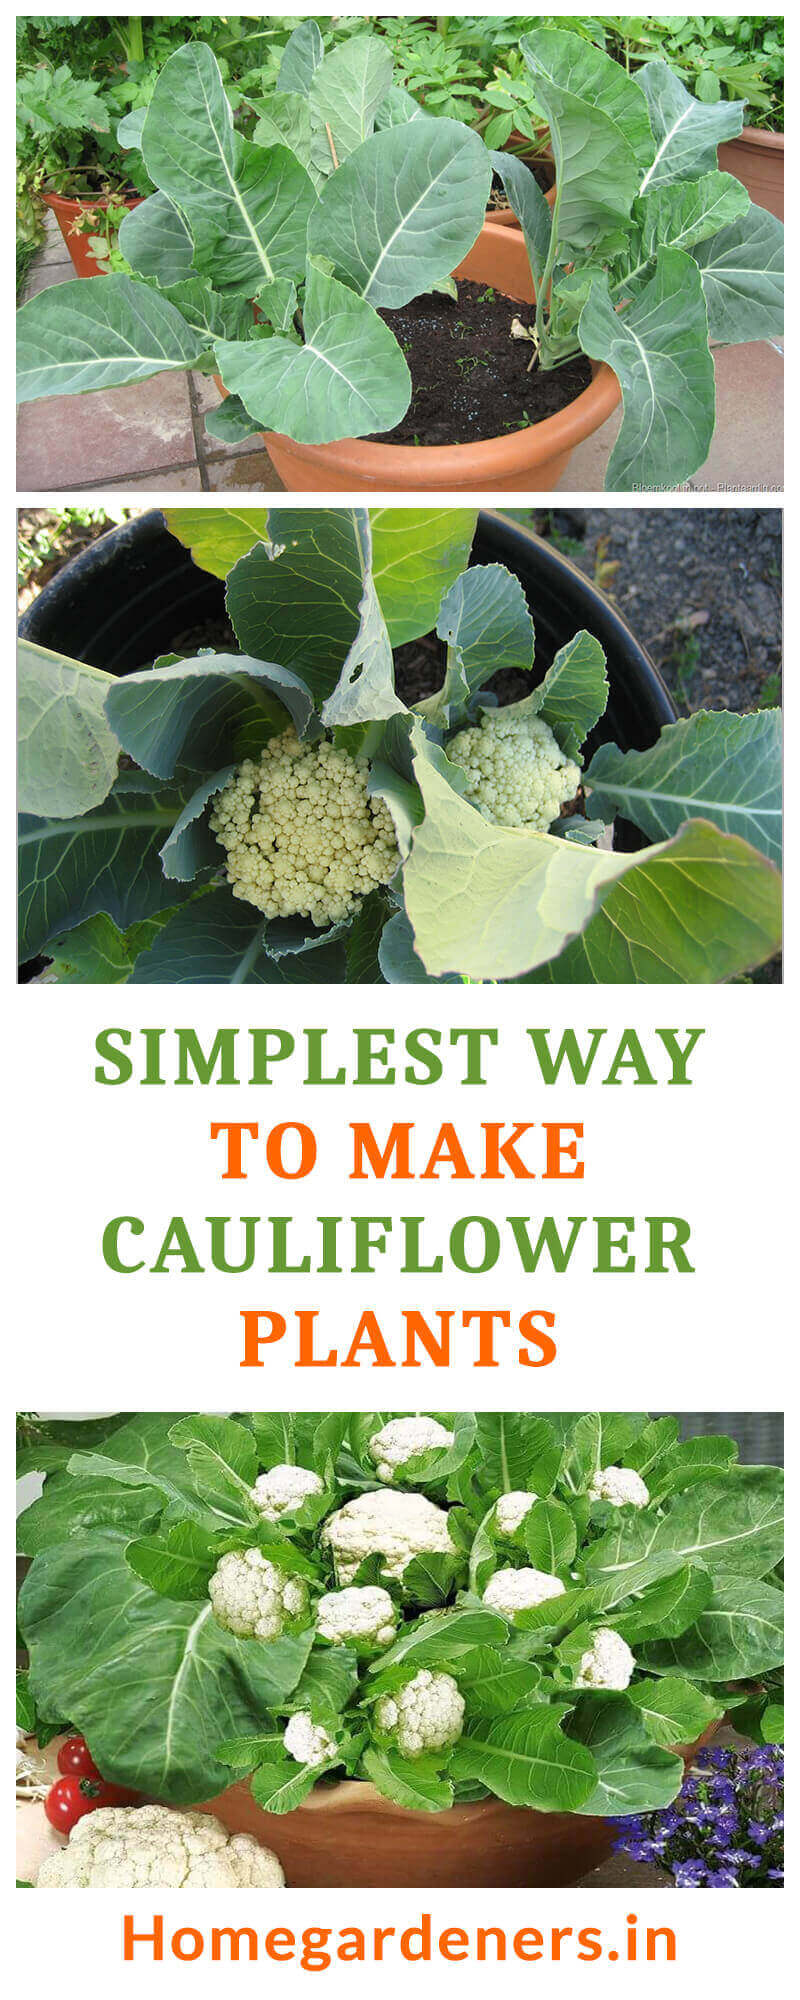 Simplest Way to Make the Best of White head Cauliflower Plants